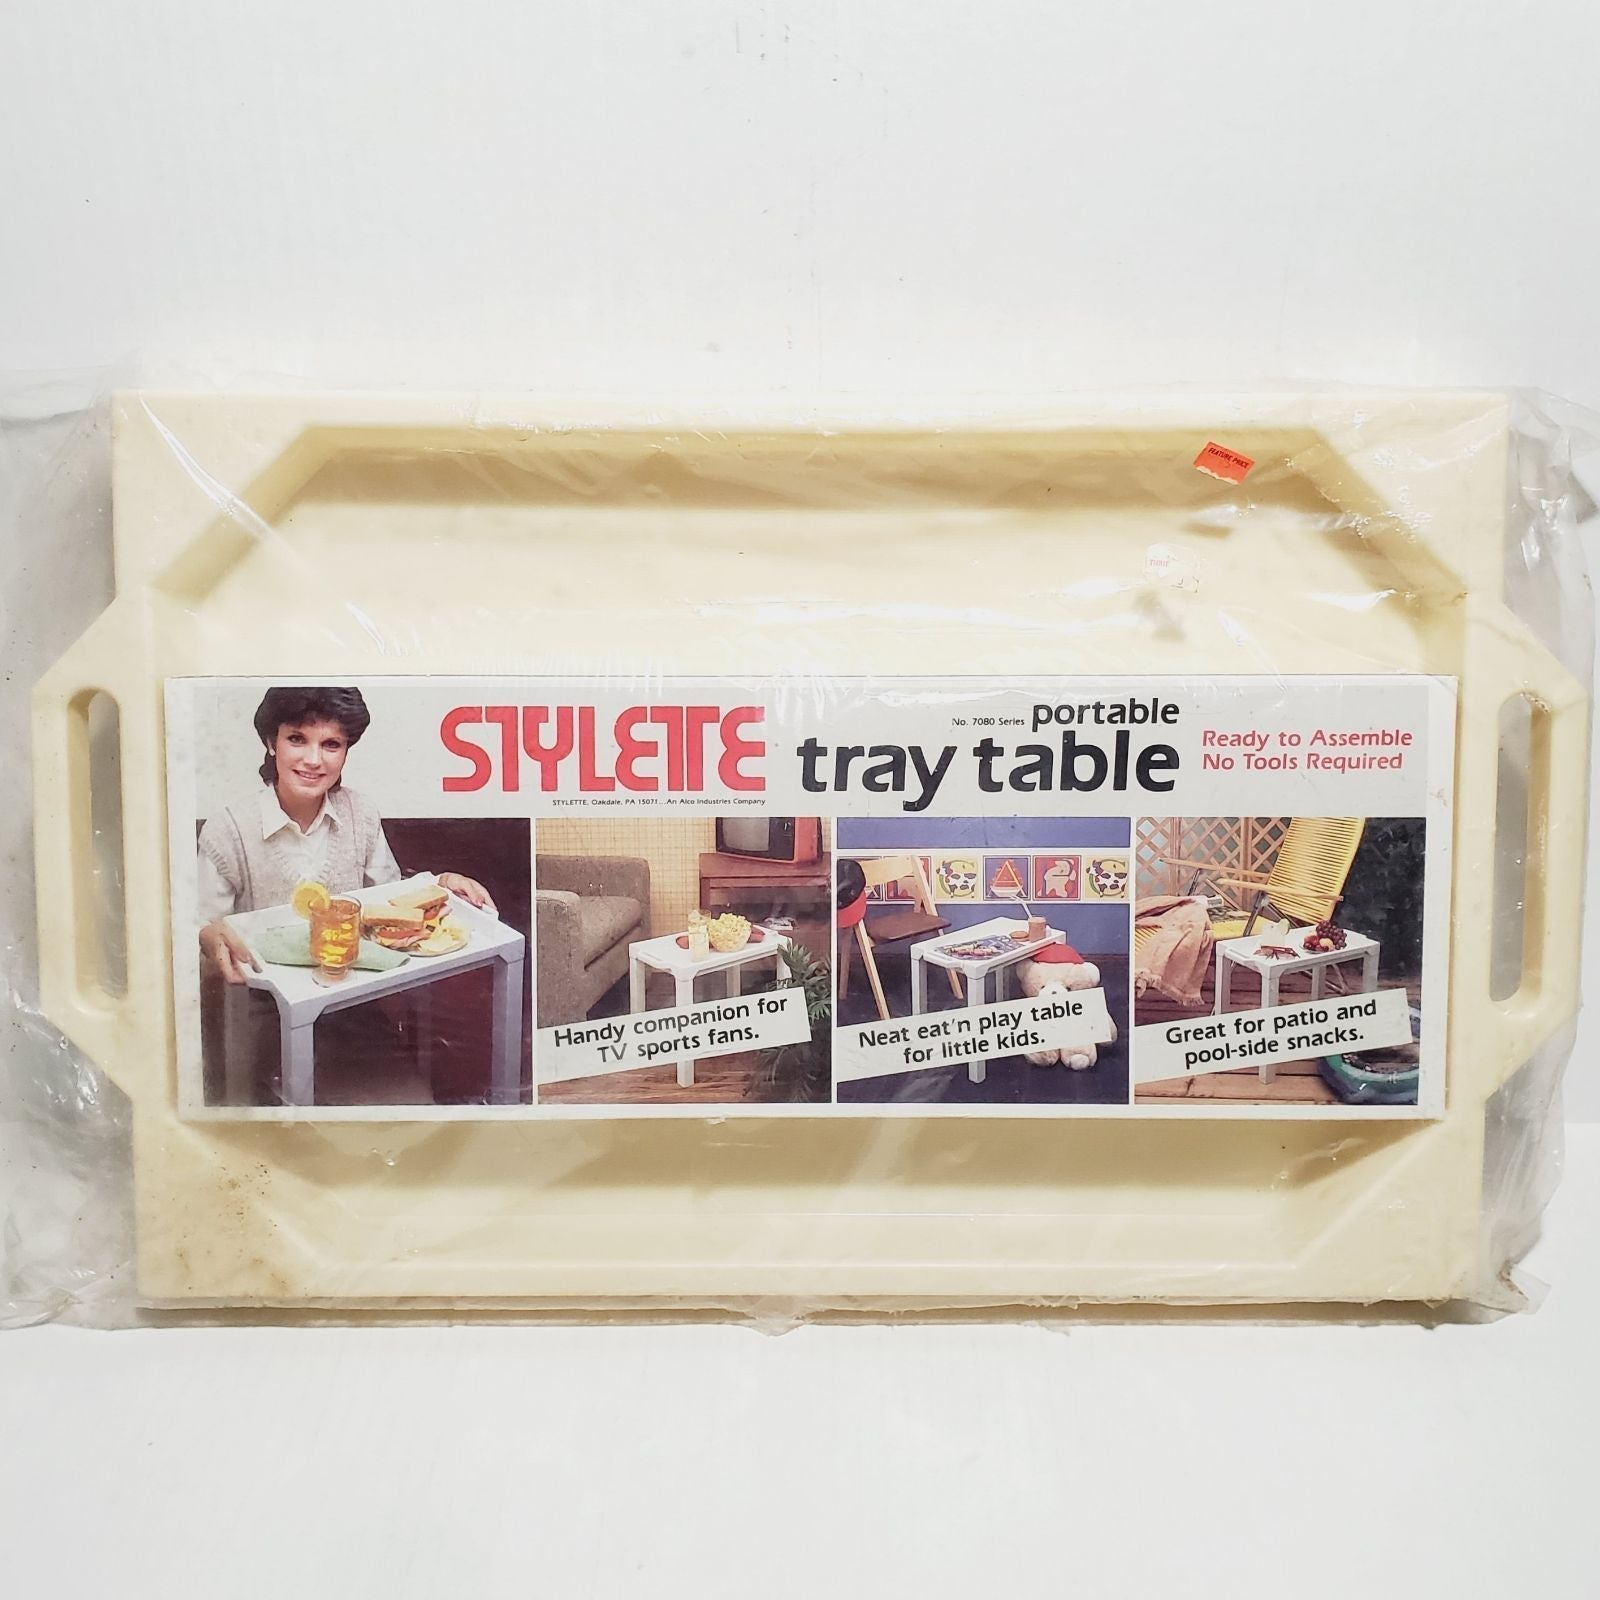 New Stylette Portable Tray Table  Ready